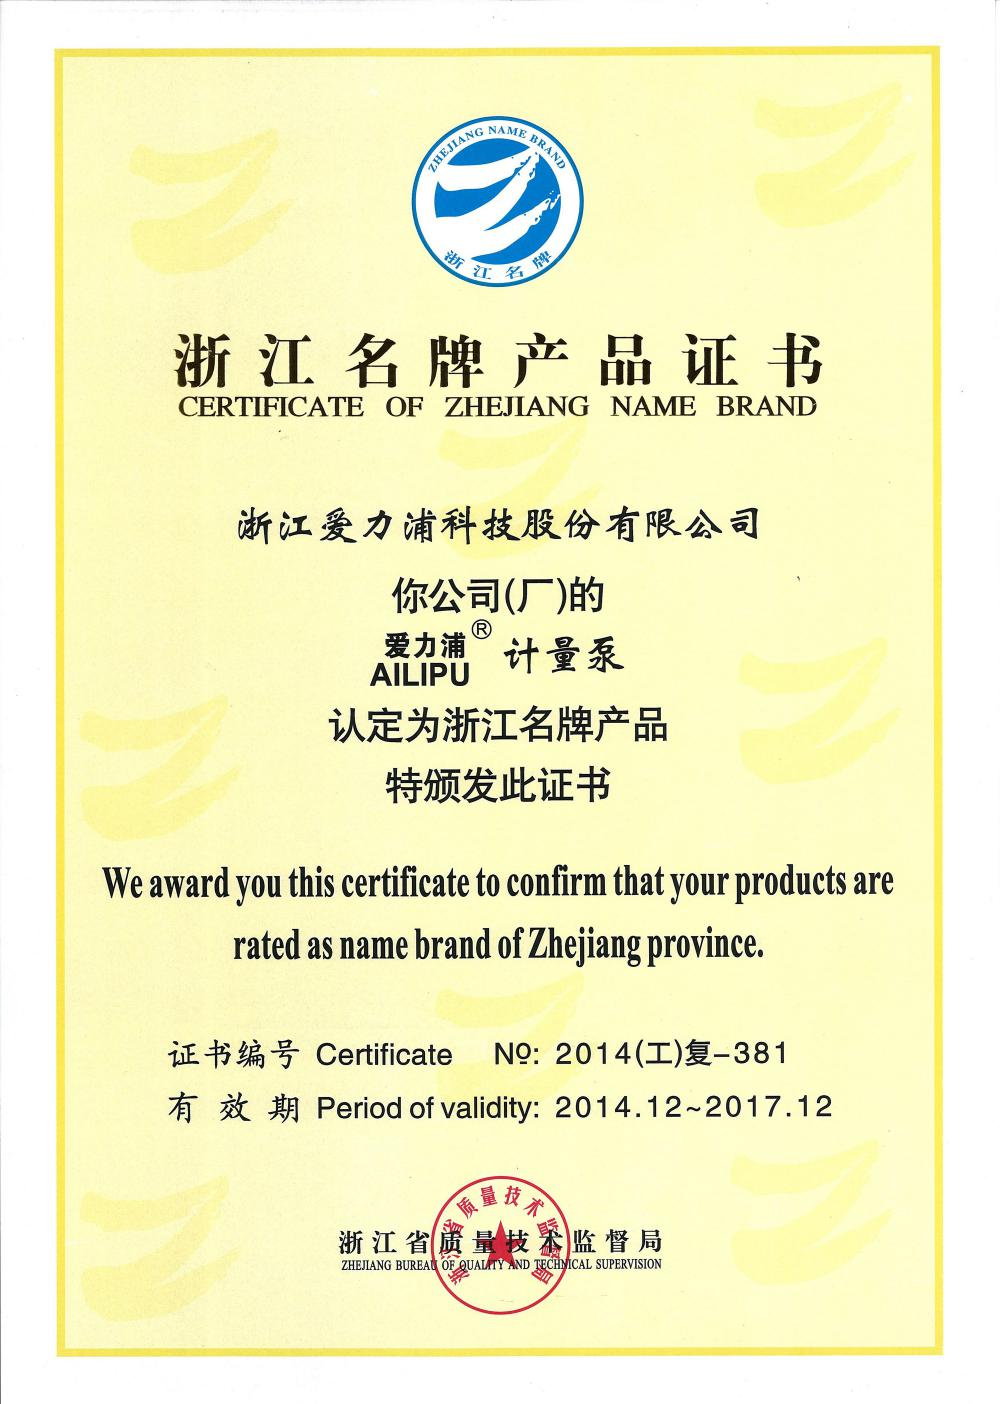 Certificate of ZHEJIANG name brand